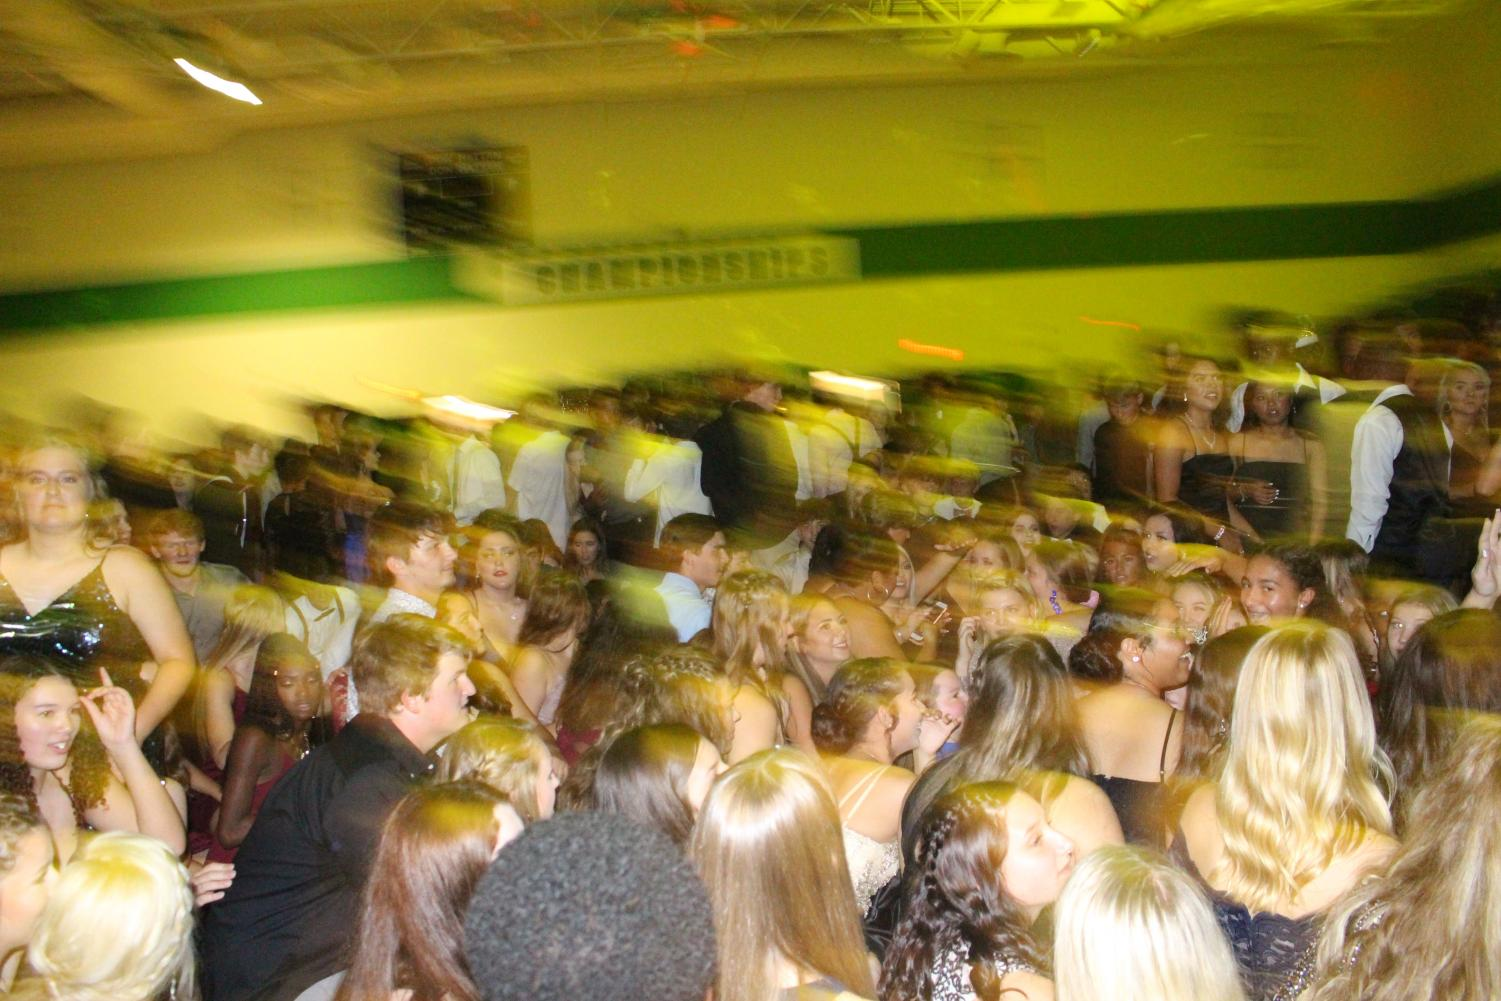 People+on+the+dance+floor+get+low+to+the+ground+to+tell+the+DJ+to+change+the+music.